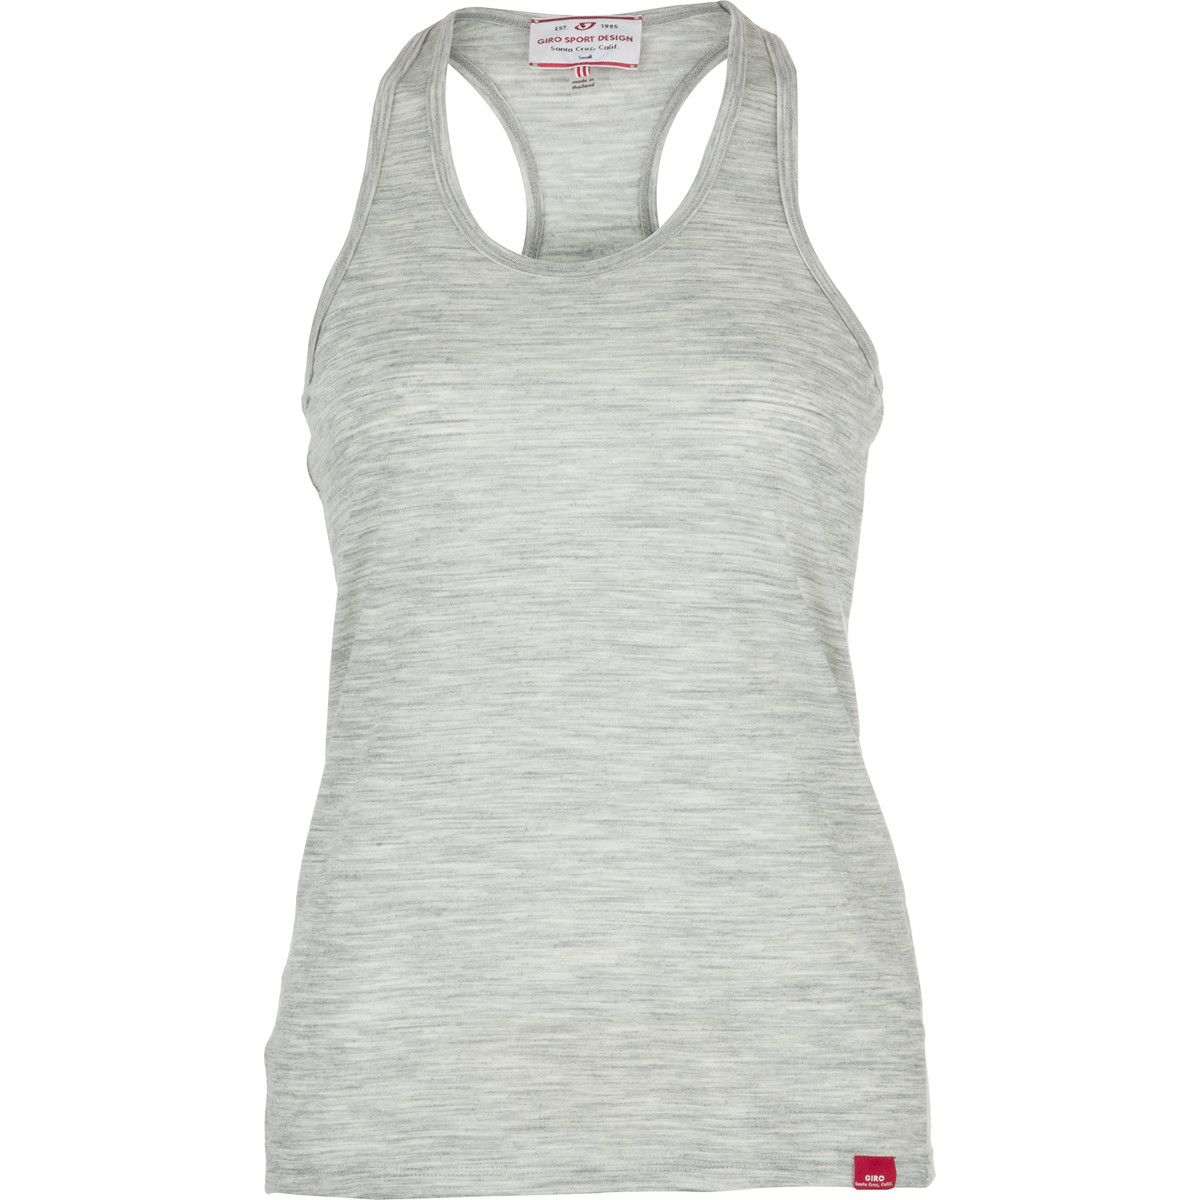 Giro Road Racer Sleeveless